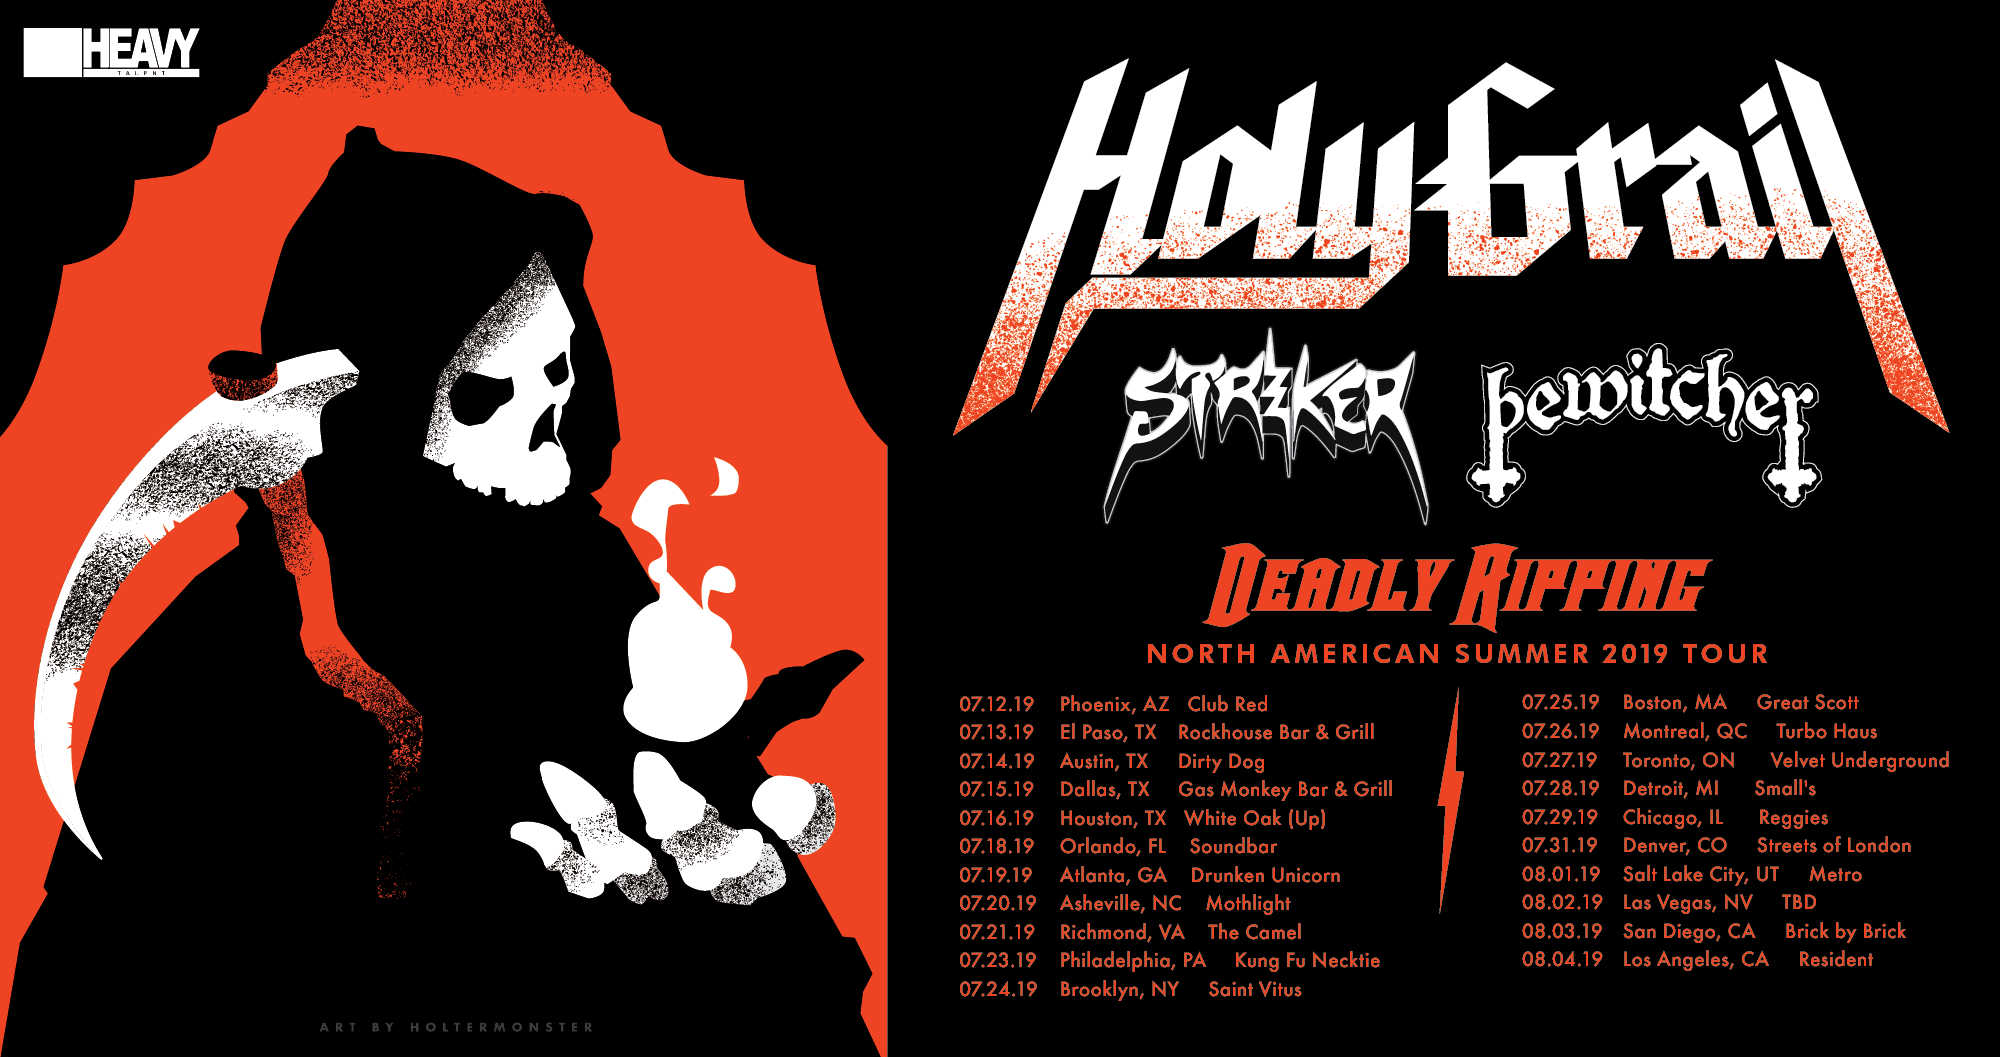 HolyGrail_2019_DeadlyRipping_tour-banner.png